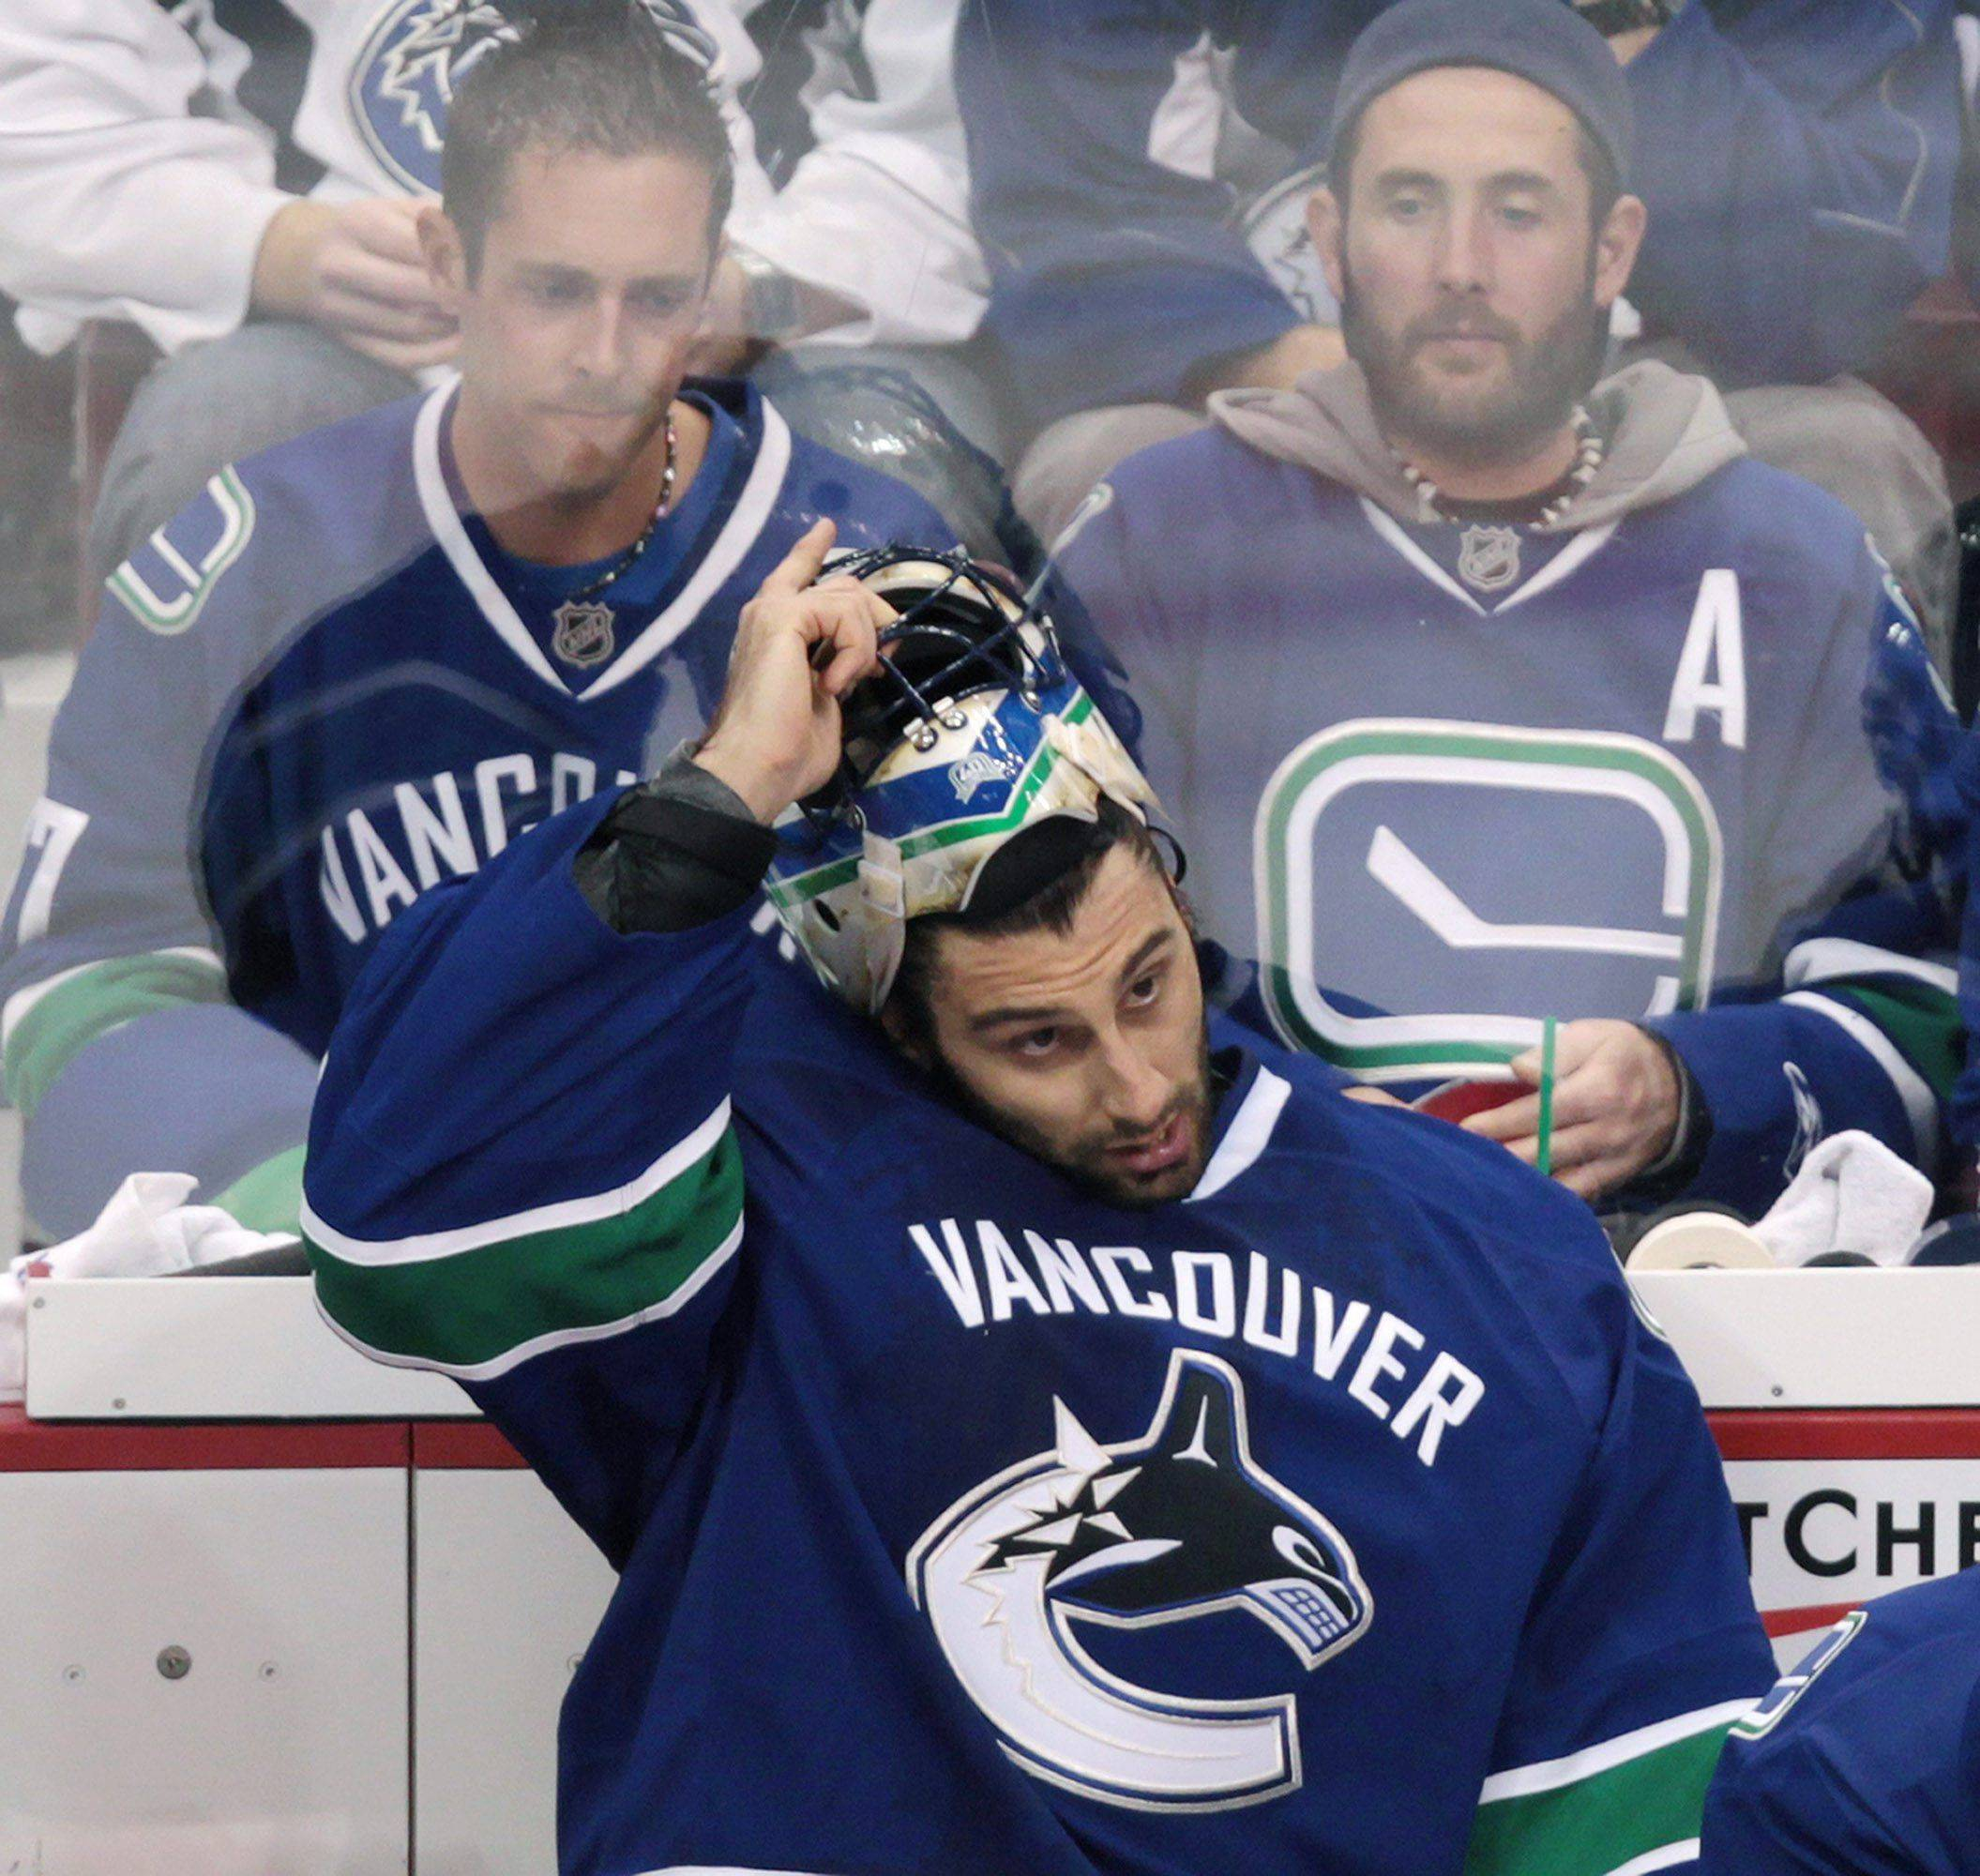 Vancouver Canucks goalie Roberto Luongo takes off his mask on the bench after being replaced by backup goalie Cory Schneider during the second period.